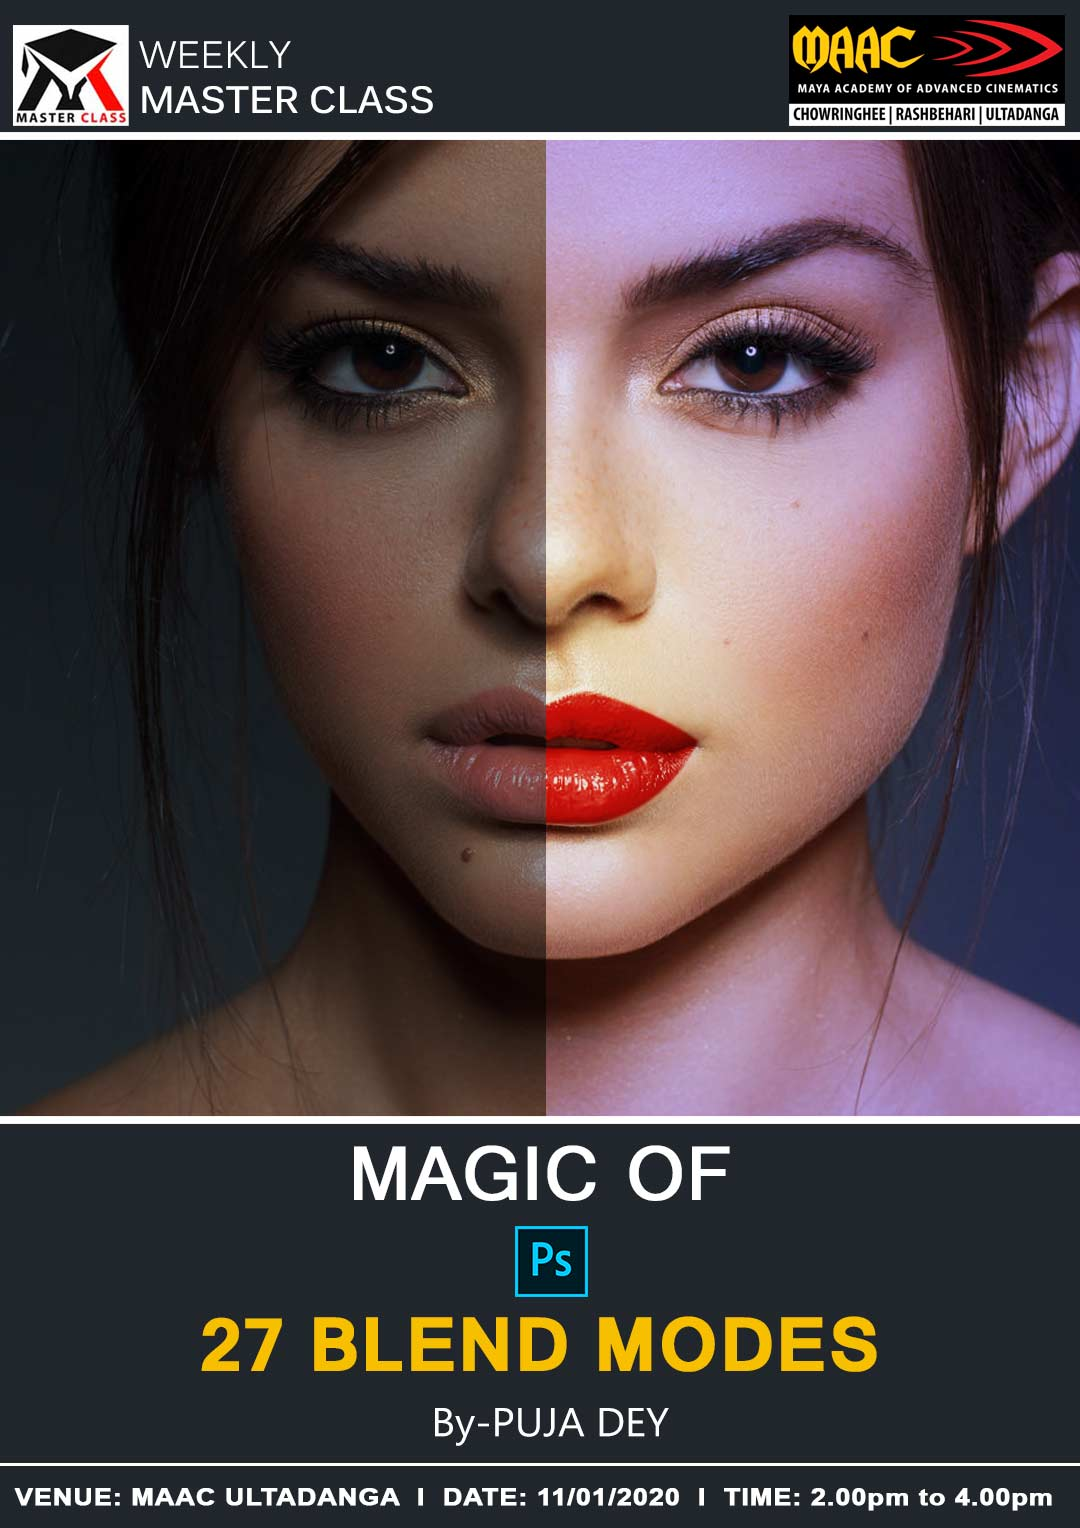 Weekly Master Class on Magic Of Photoshop Blend Modes